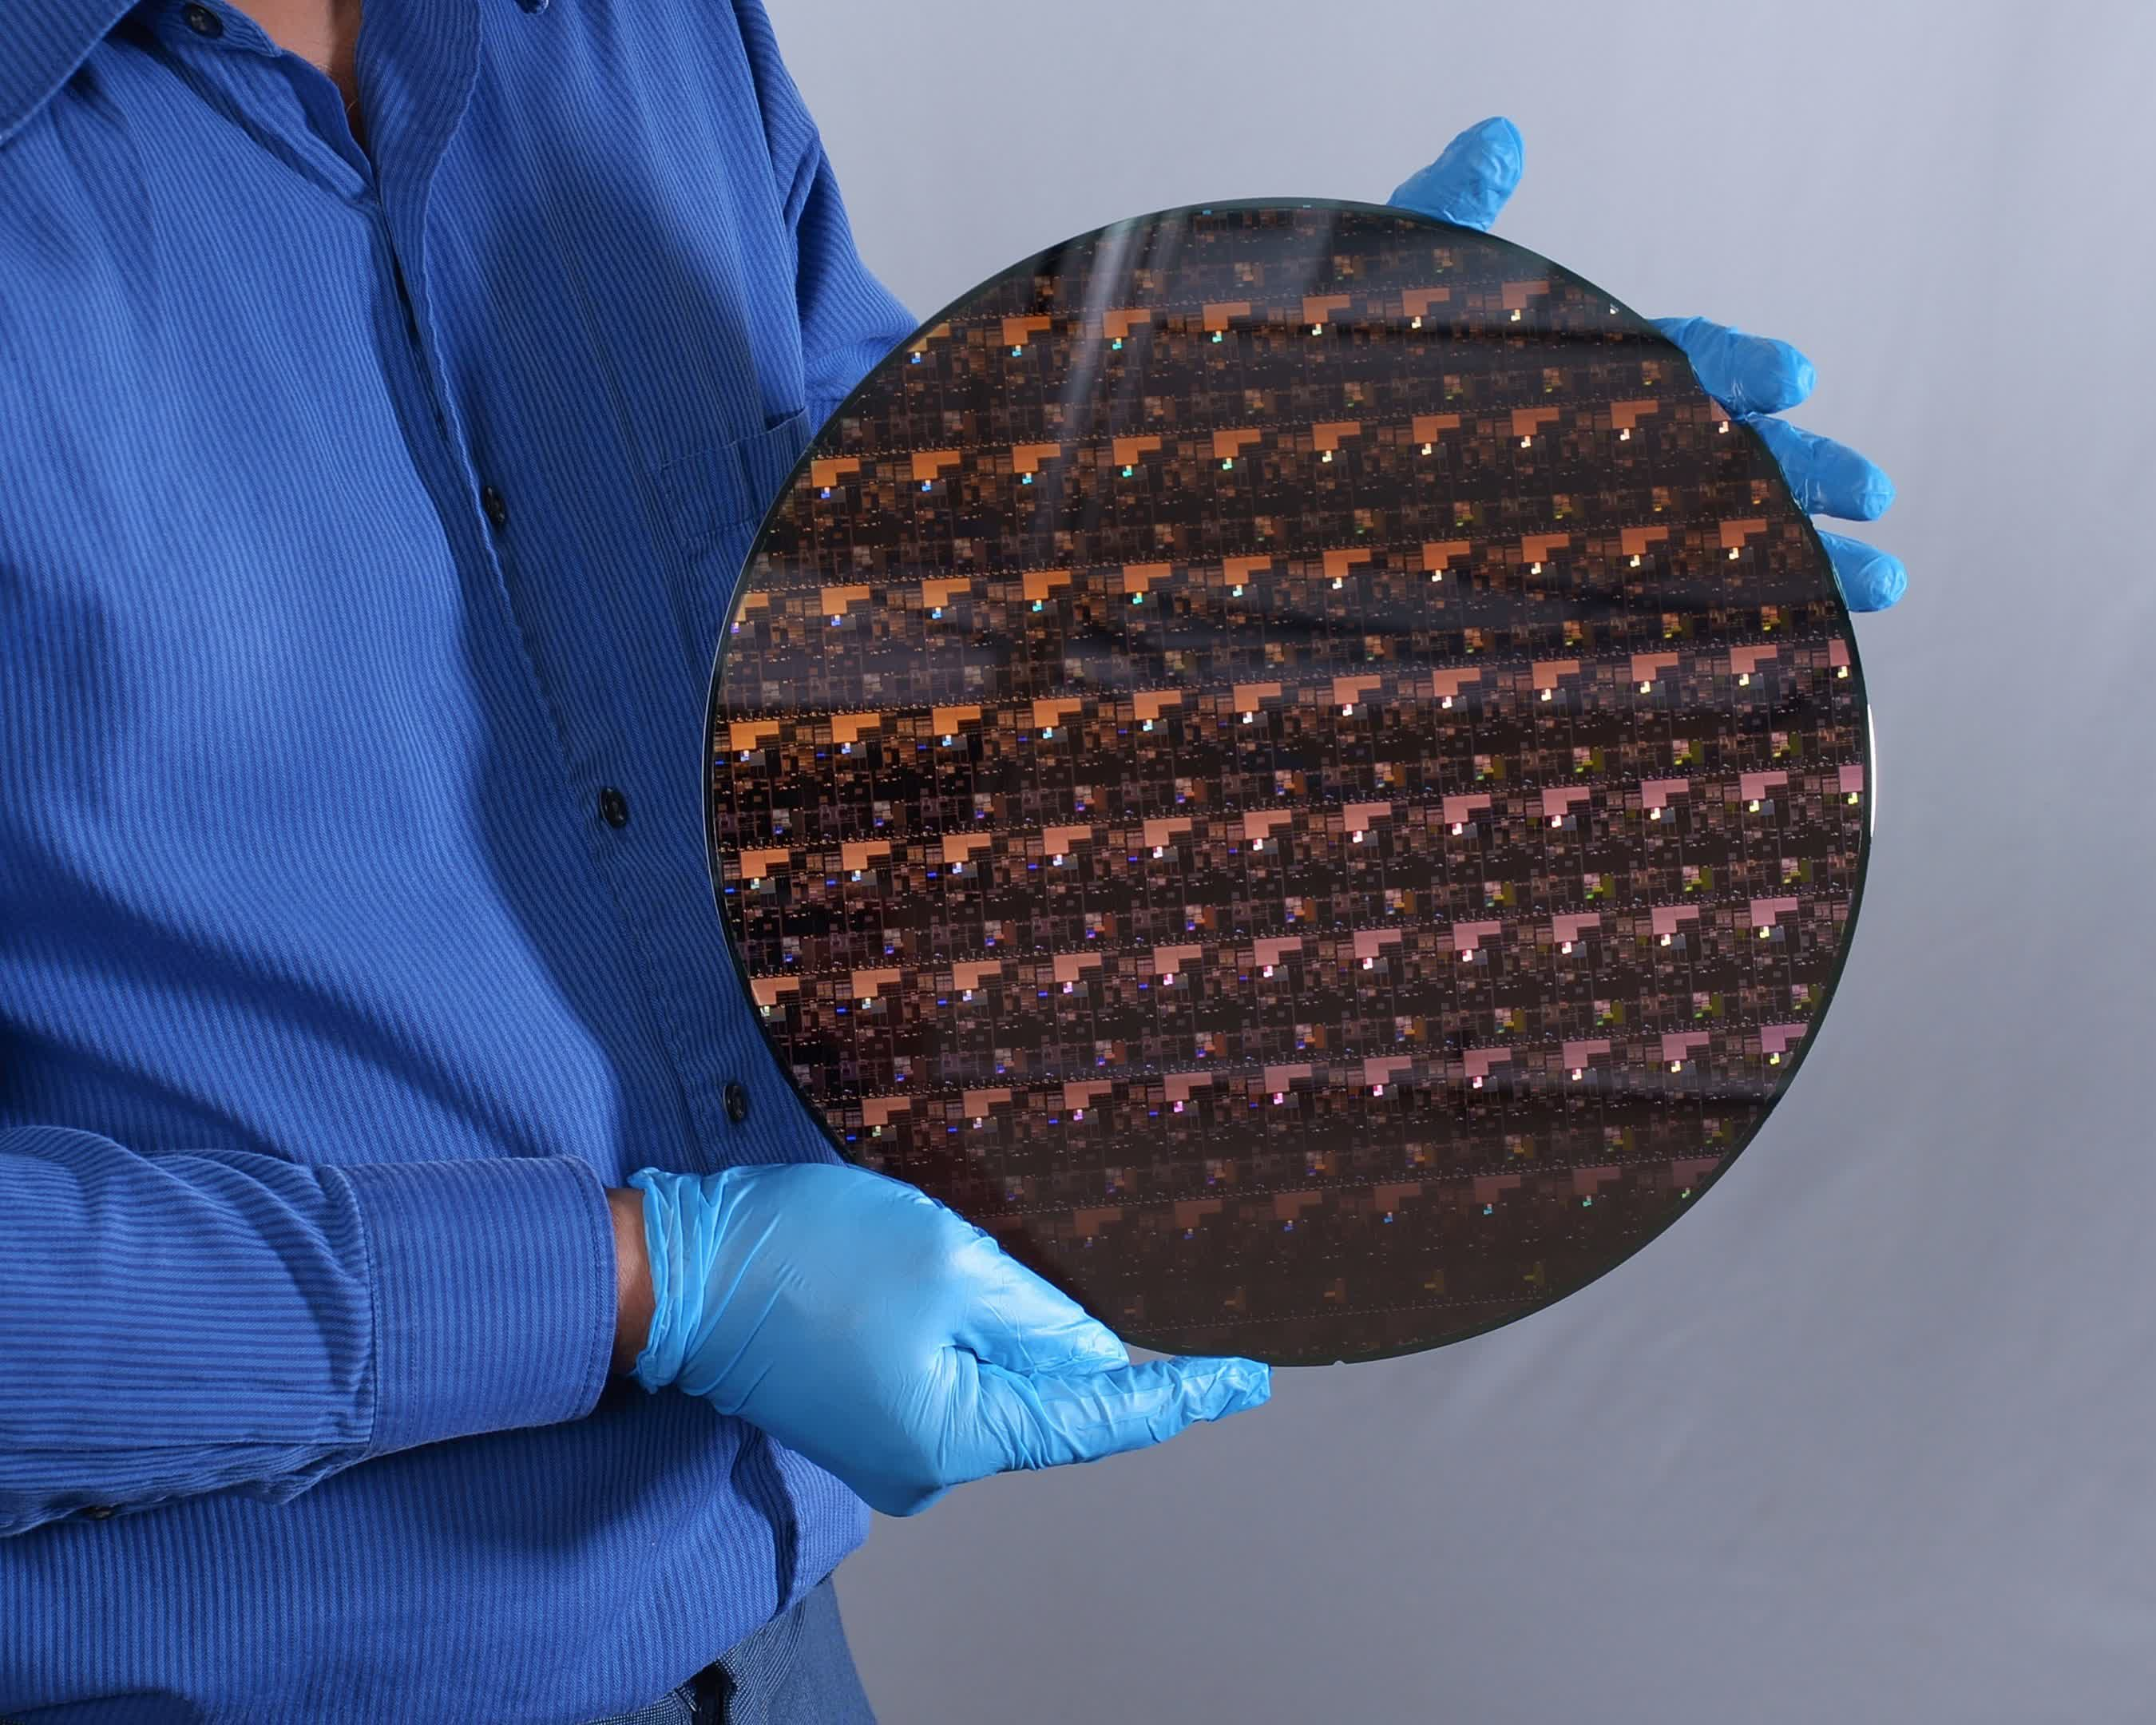 IBM's new 2nm design can pack over 50 billion transistors onto a chip the size of a fingernail